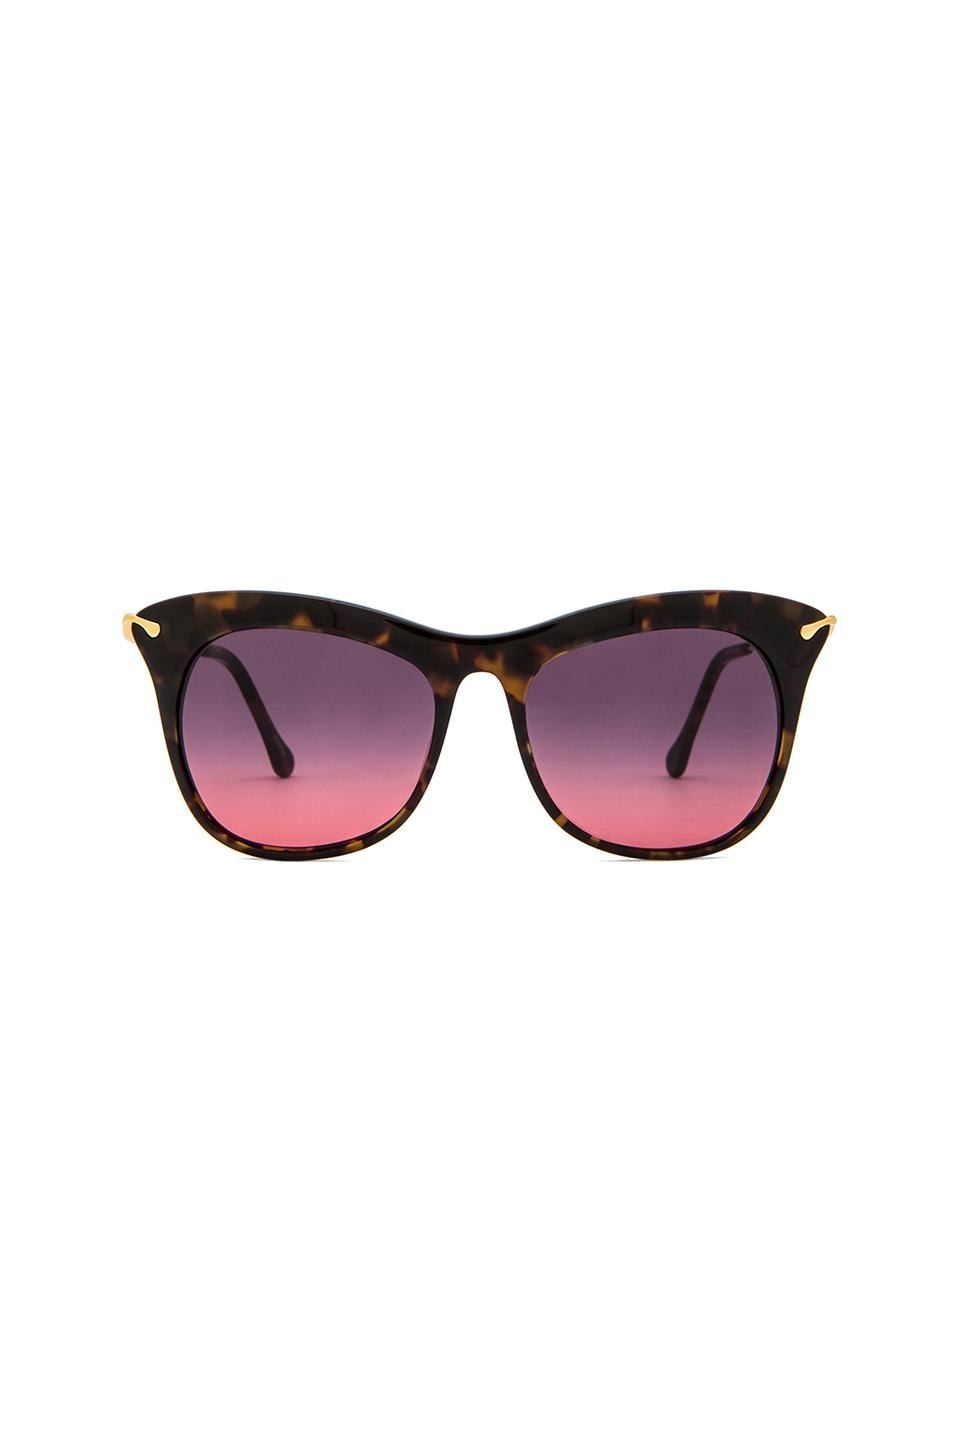 Elizabeth and James Fairfax Sunglasses in Acetate